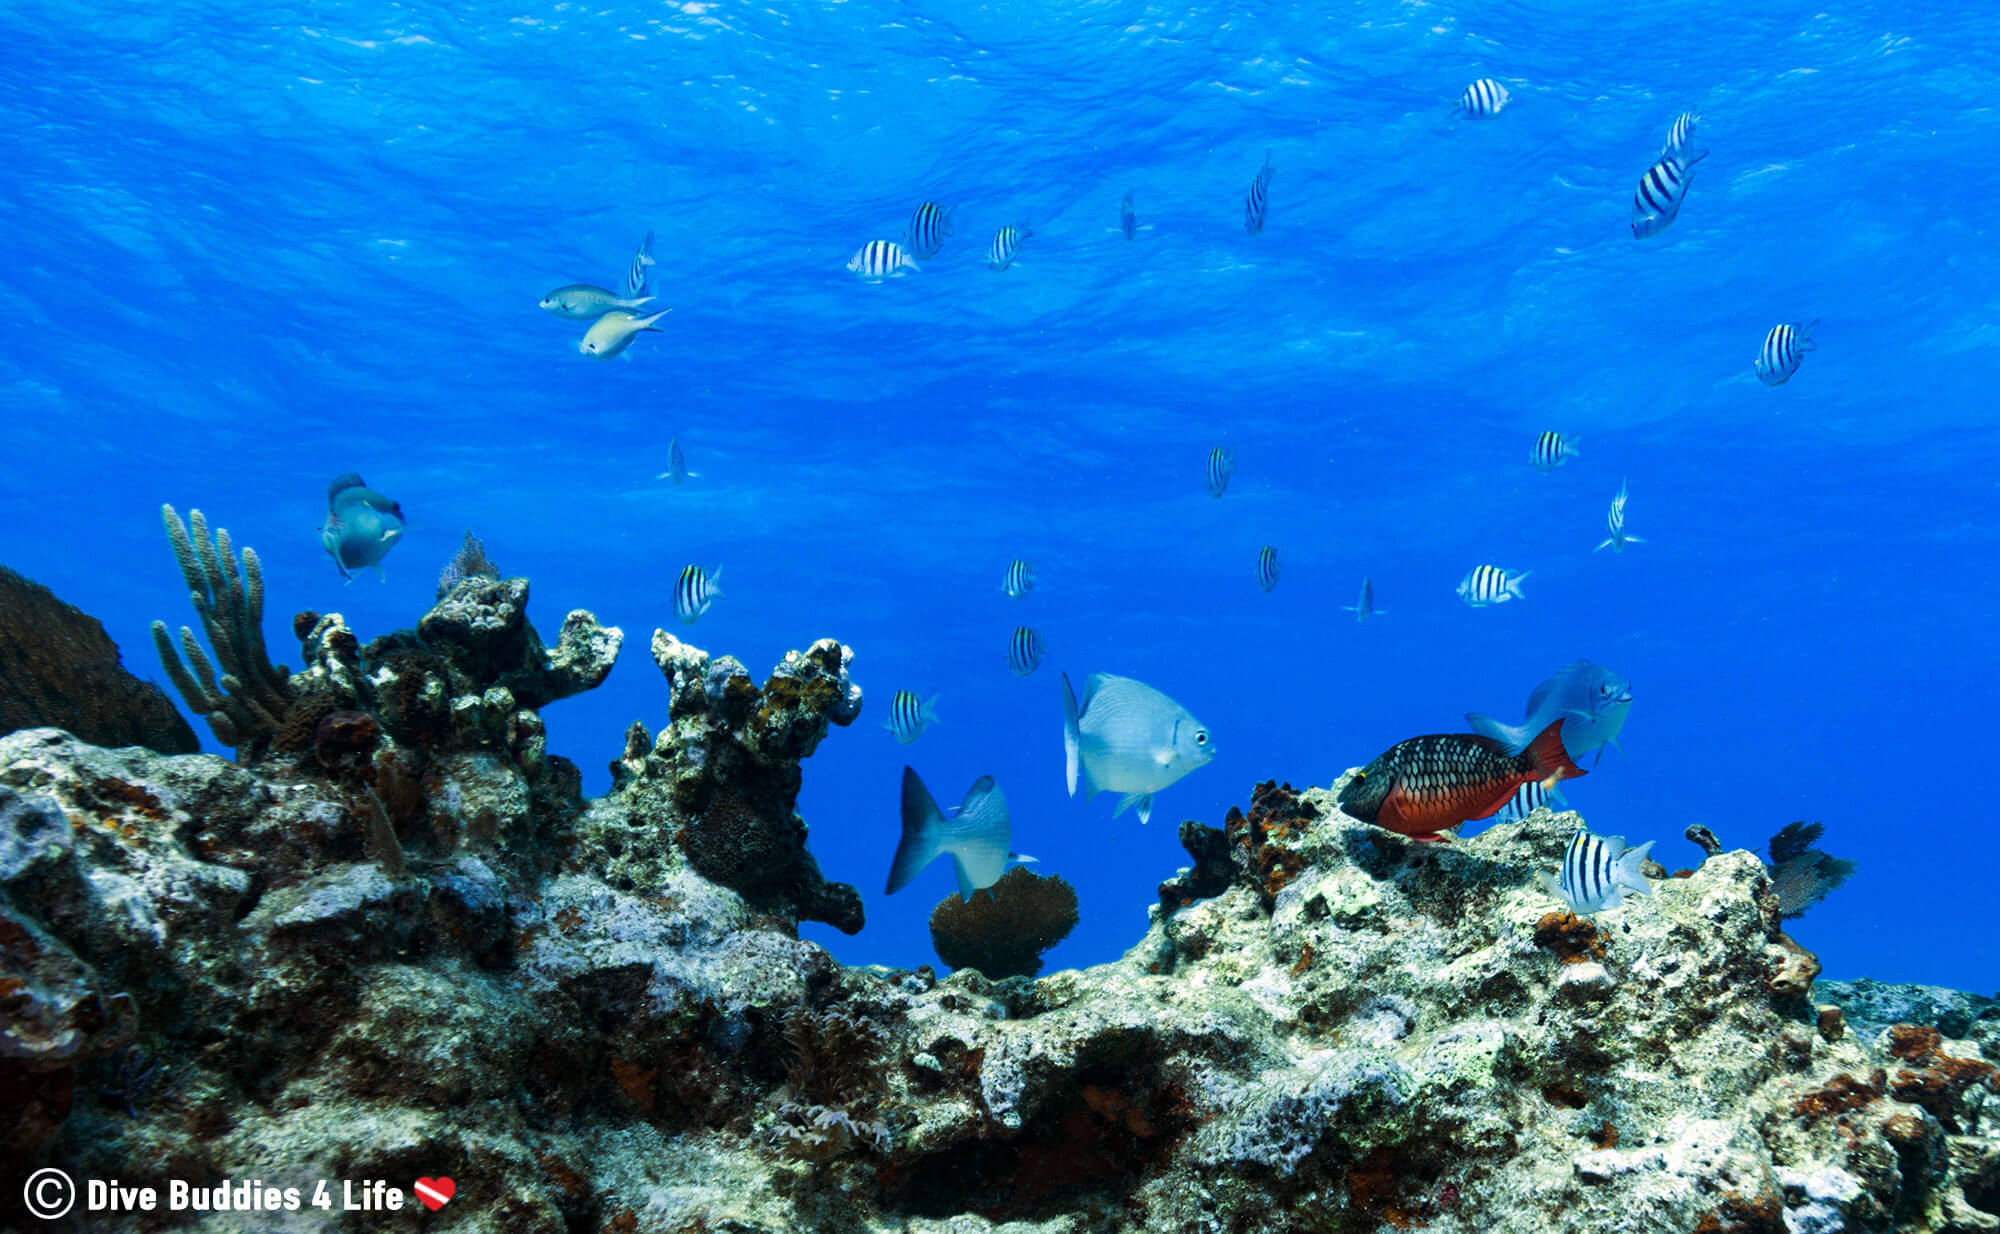 French Reef In The Florida Keys, Key Largo, USA